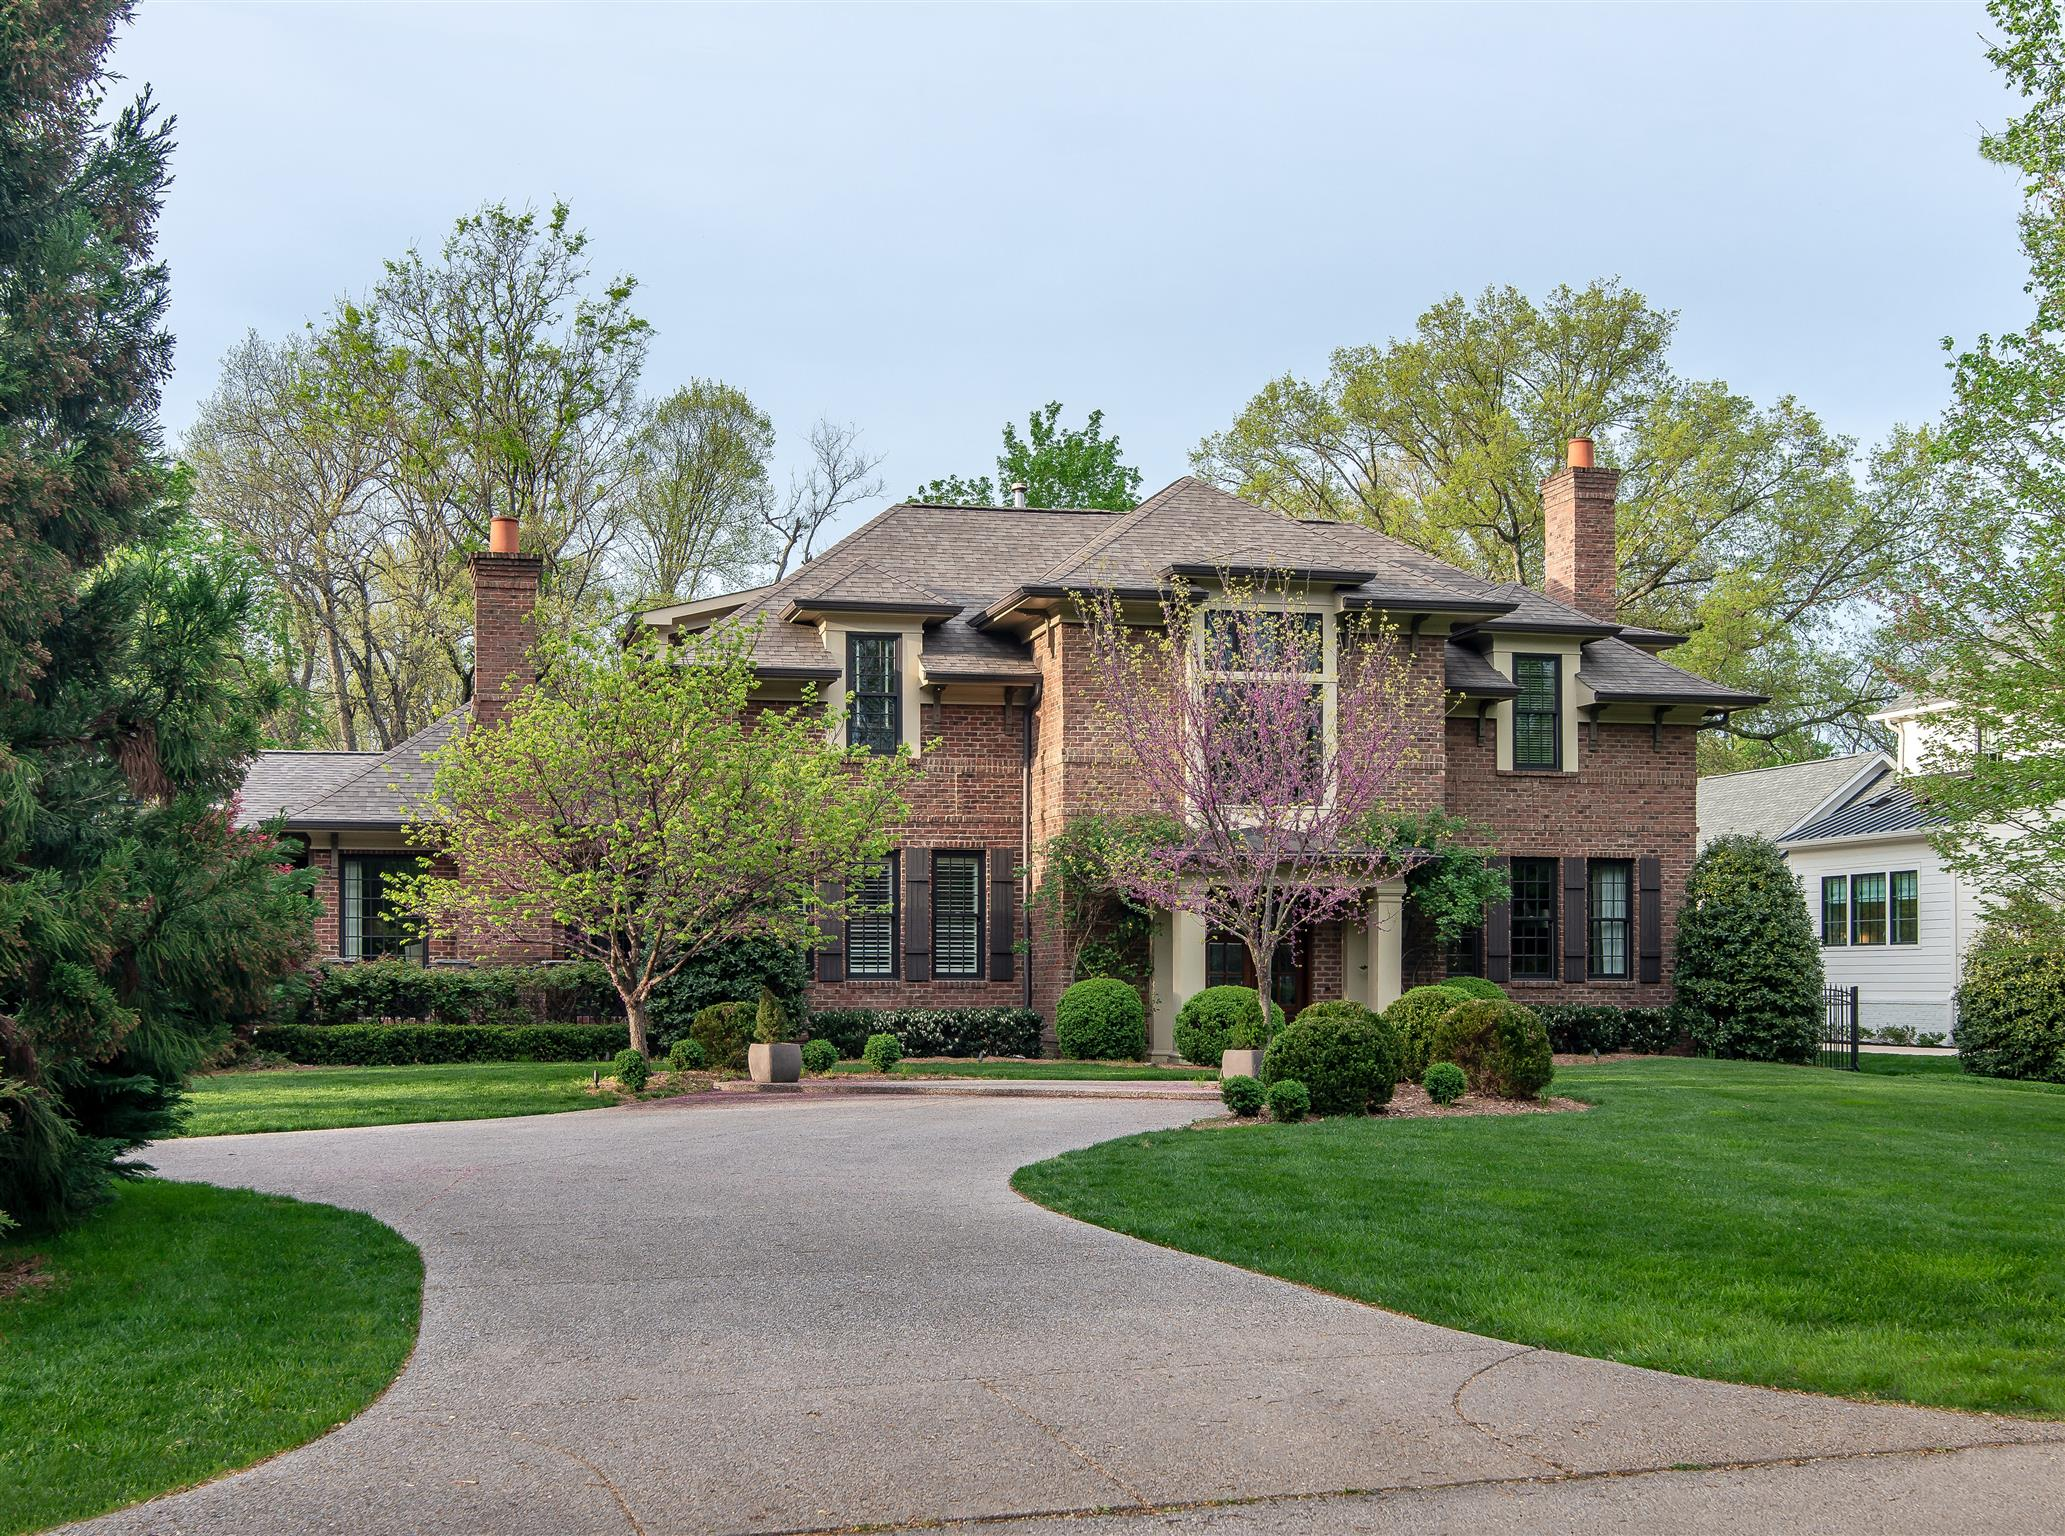 $2,349,000 - 7Br/7Ba -  for Sale in Stokes Tract, Nashville